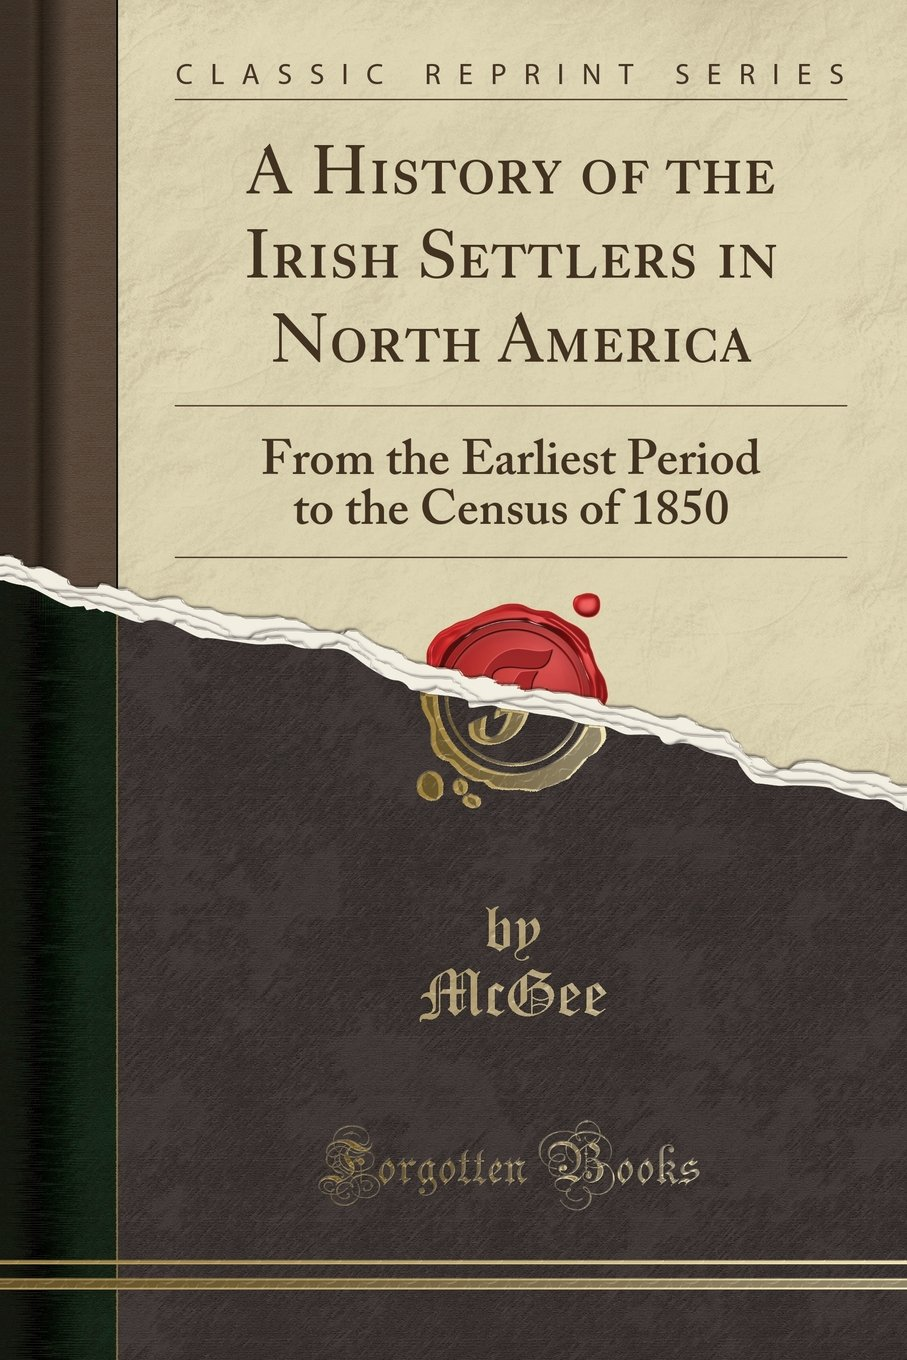 Download A History of the Irish Settlers in North America: From the Earliest Period to the Census of 1850 (Classic Reprint) pdf epub